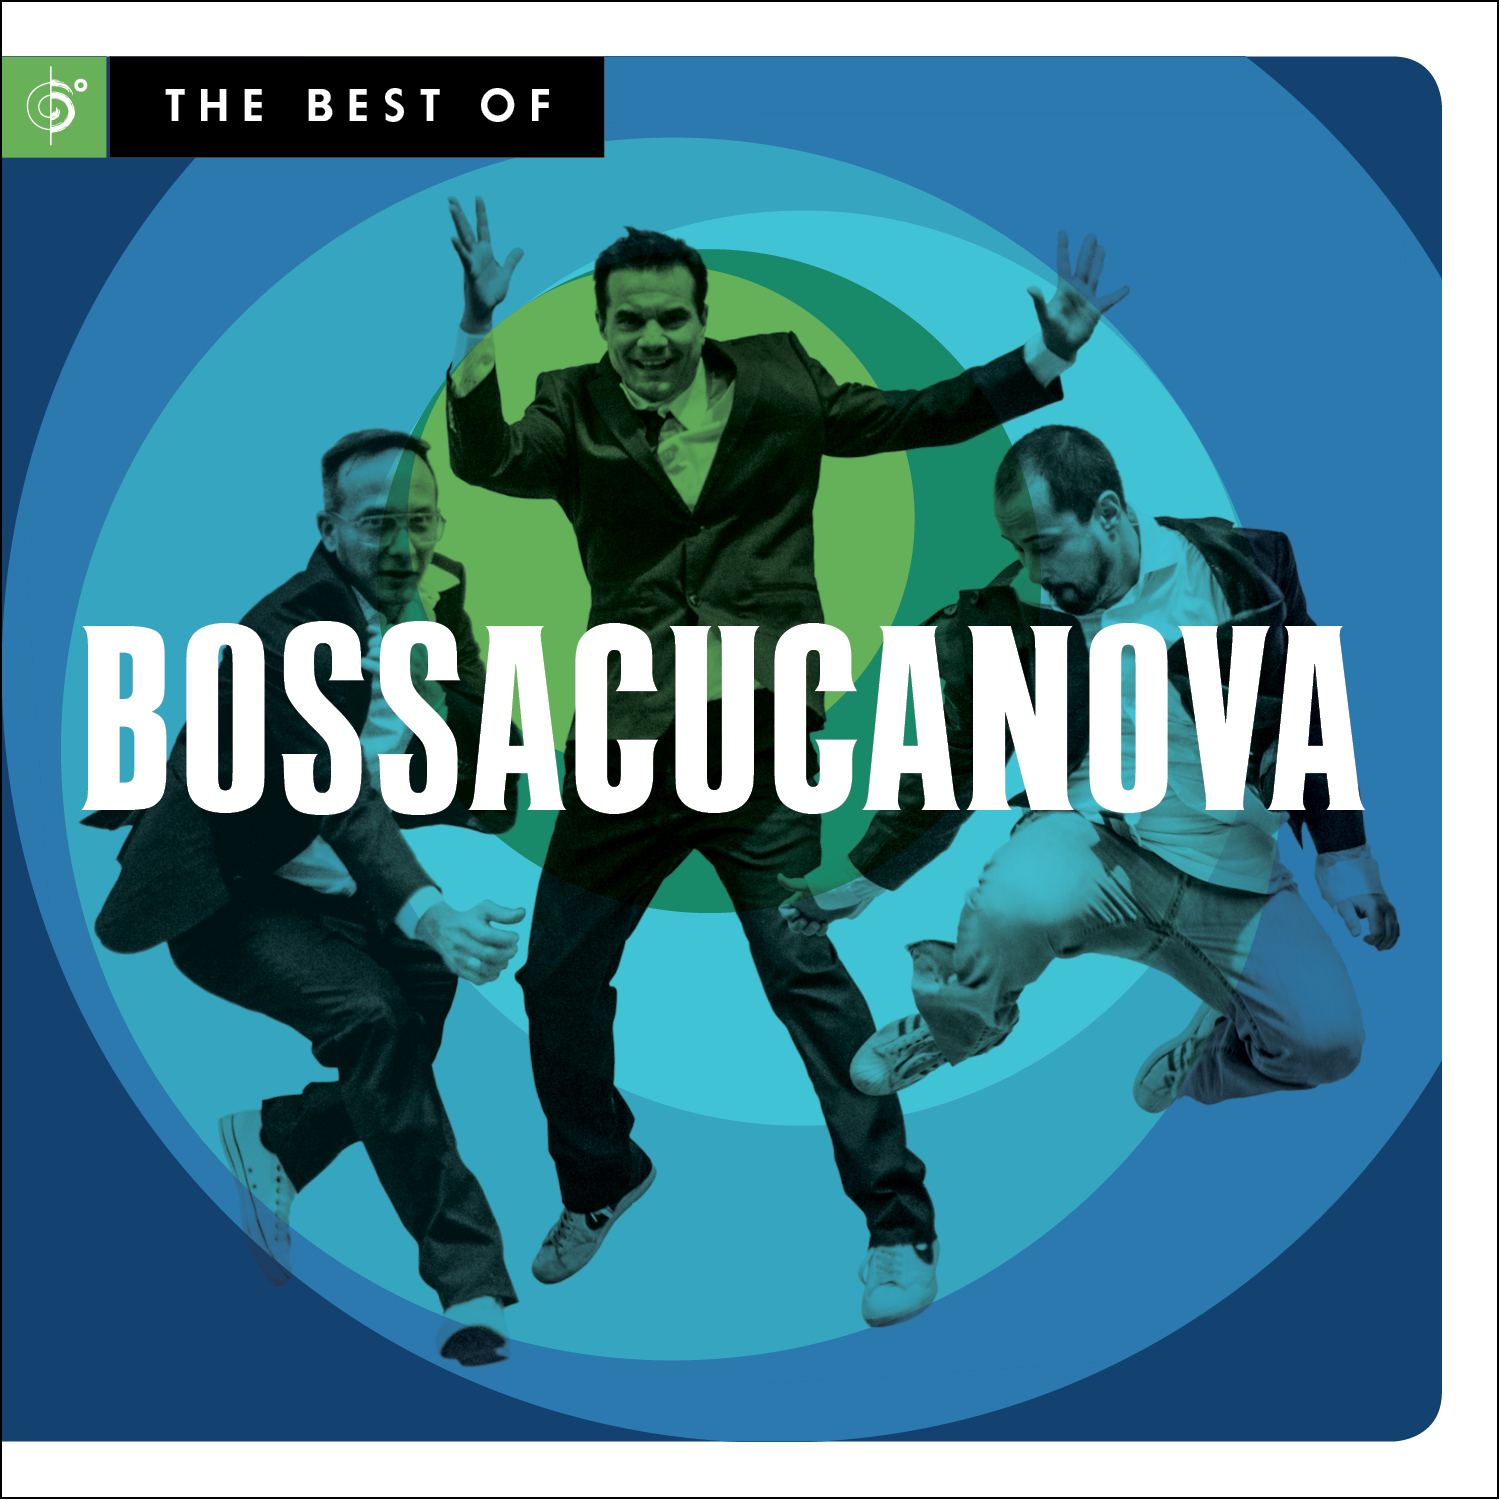 The Best of Bossacucanova